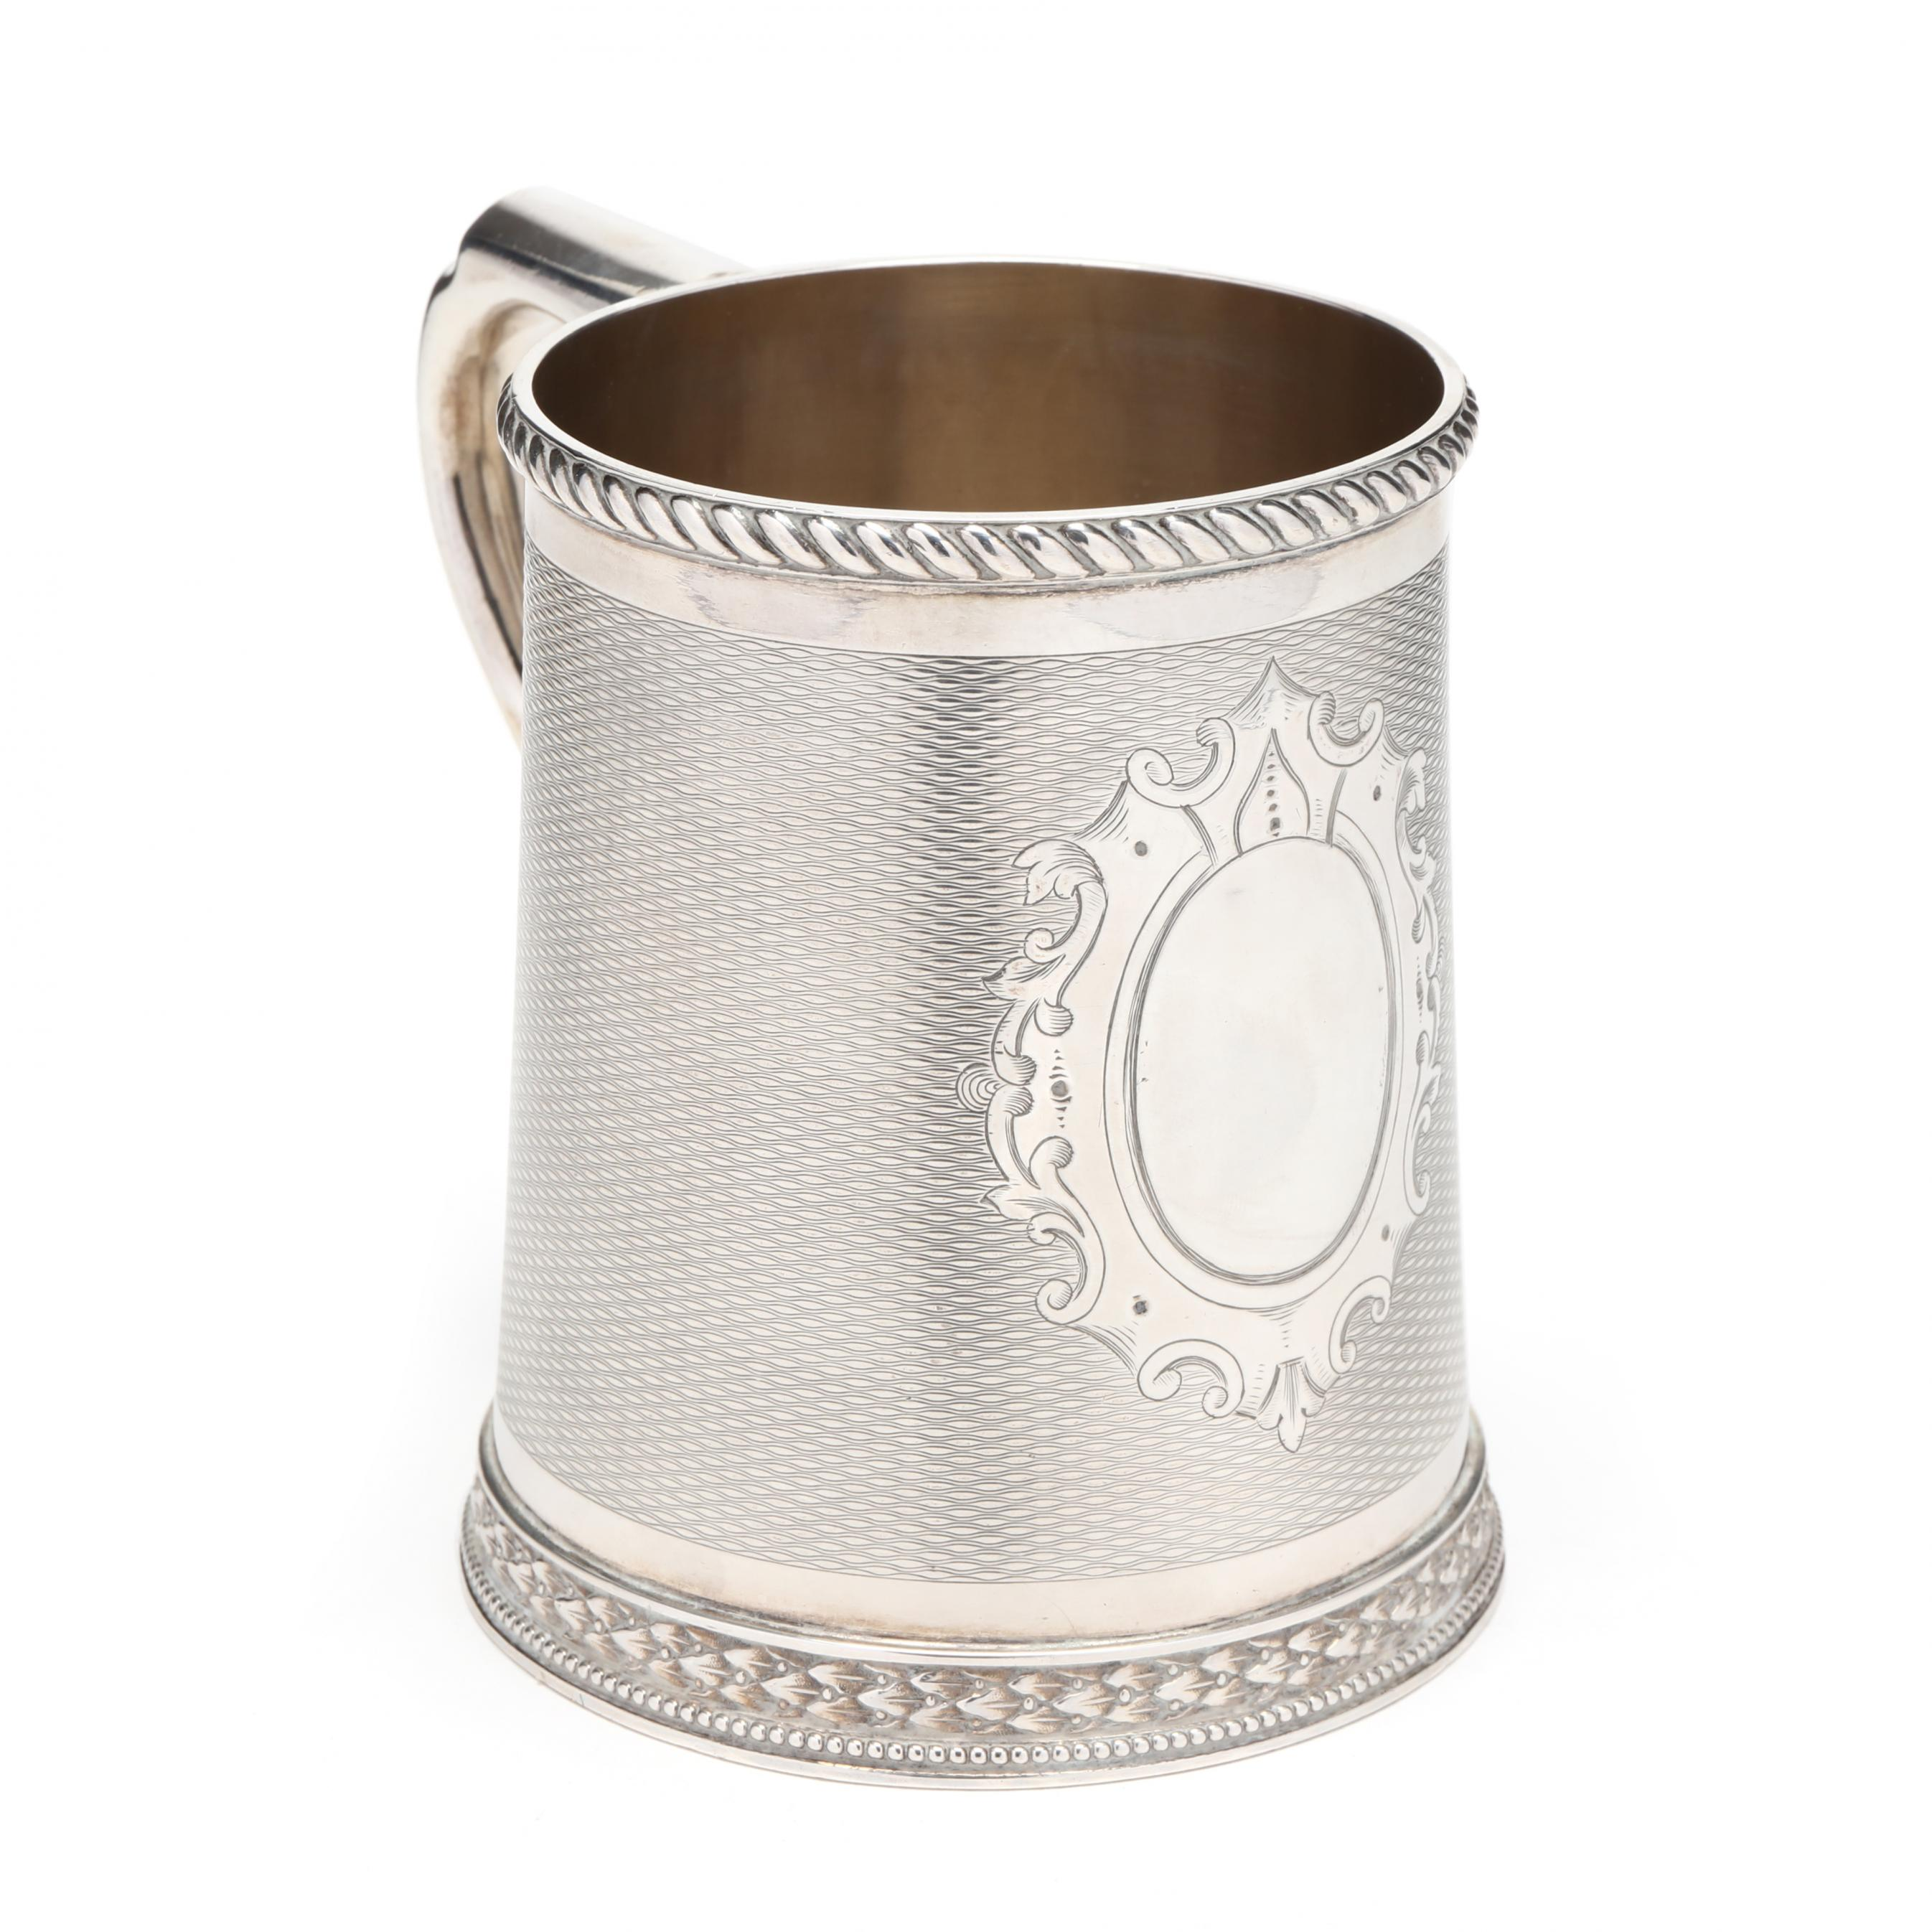 grosjean-woodward-sterling-silver-cup-for-tiffany-co